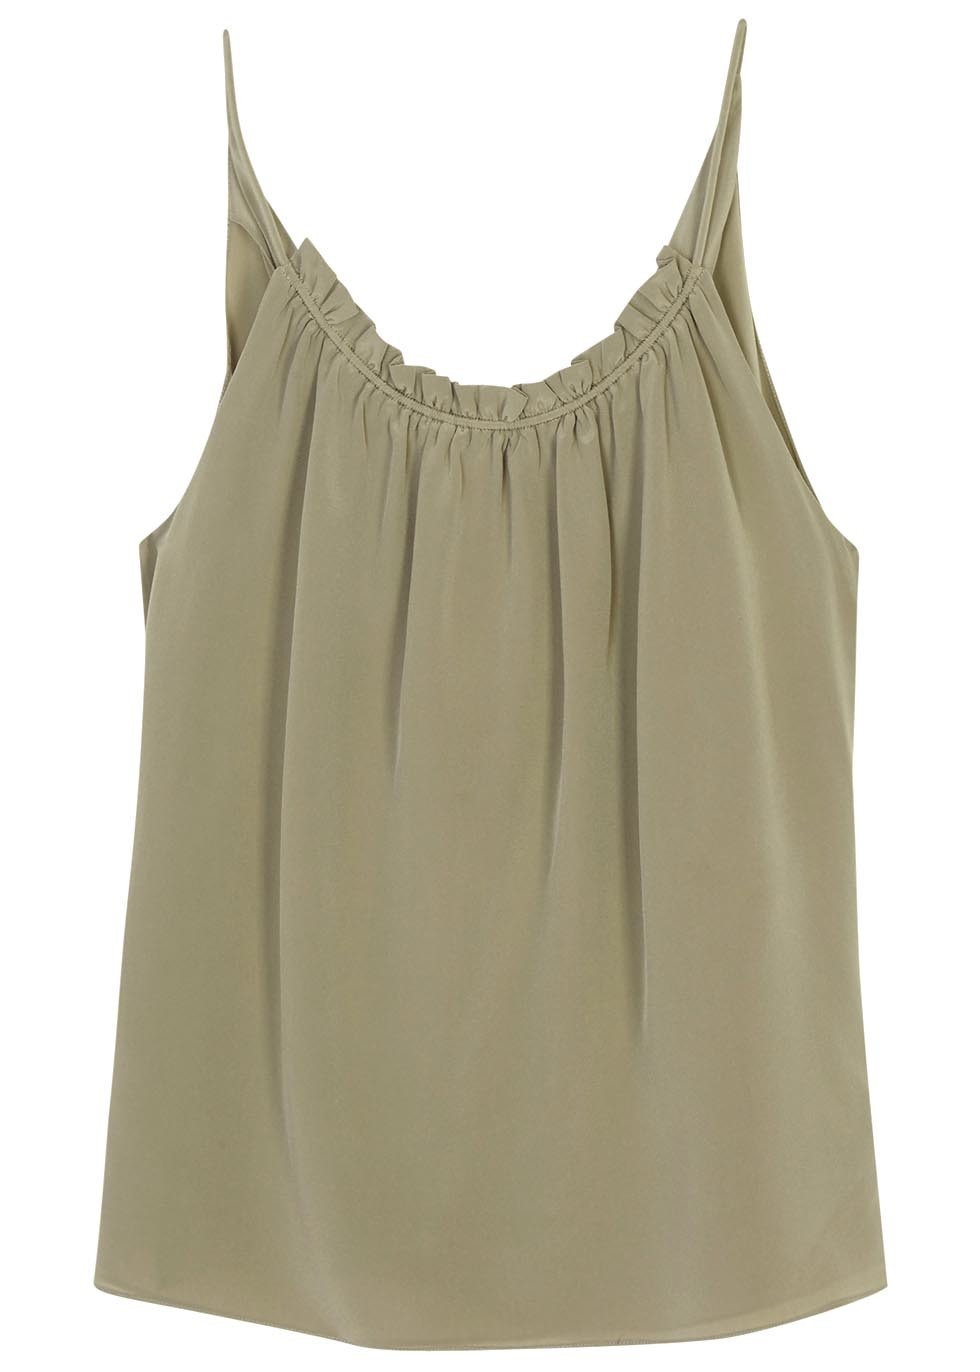 Olive Draped Silk Tank - pattern: plain; sleeve style: sleeveless; style: camisole; predominant colour: khaki; occasions: casual; length: standard; neckline: scoop; fibres: silk - 100%; fit: body skimming; sleeve length: sleeveless; texture group: silky - light; pattern type: fabric; season: s/s 2016; wardrobe: basic